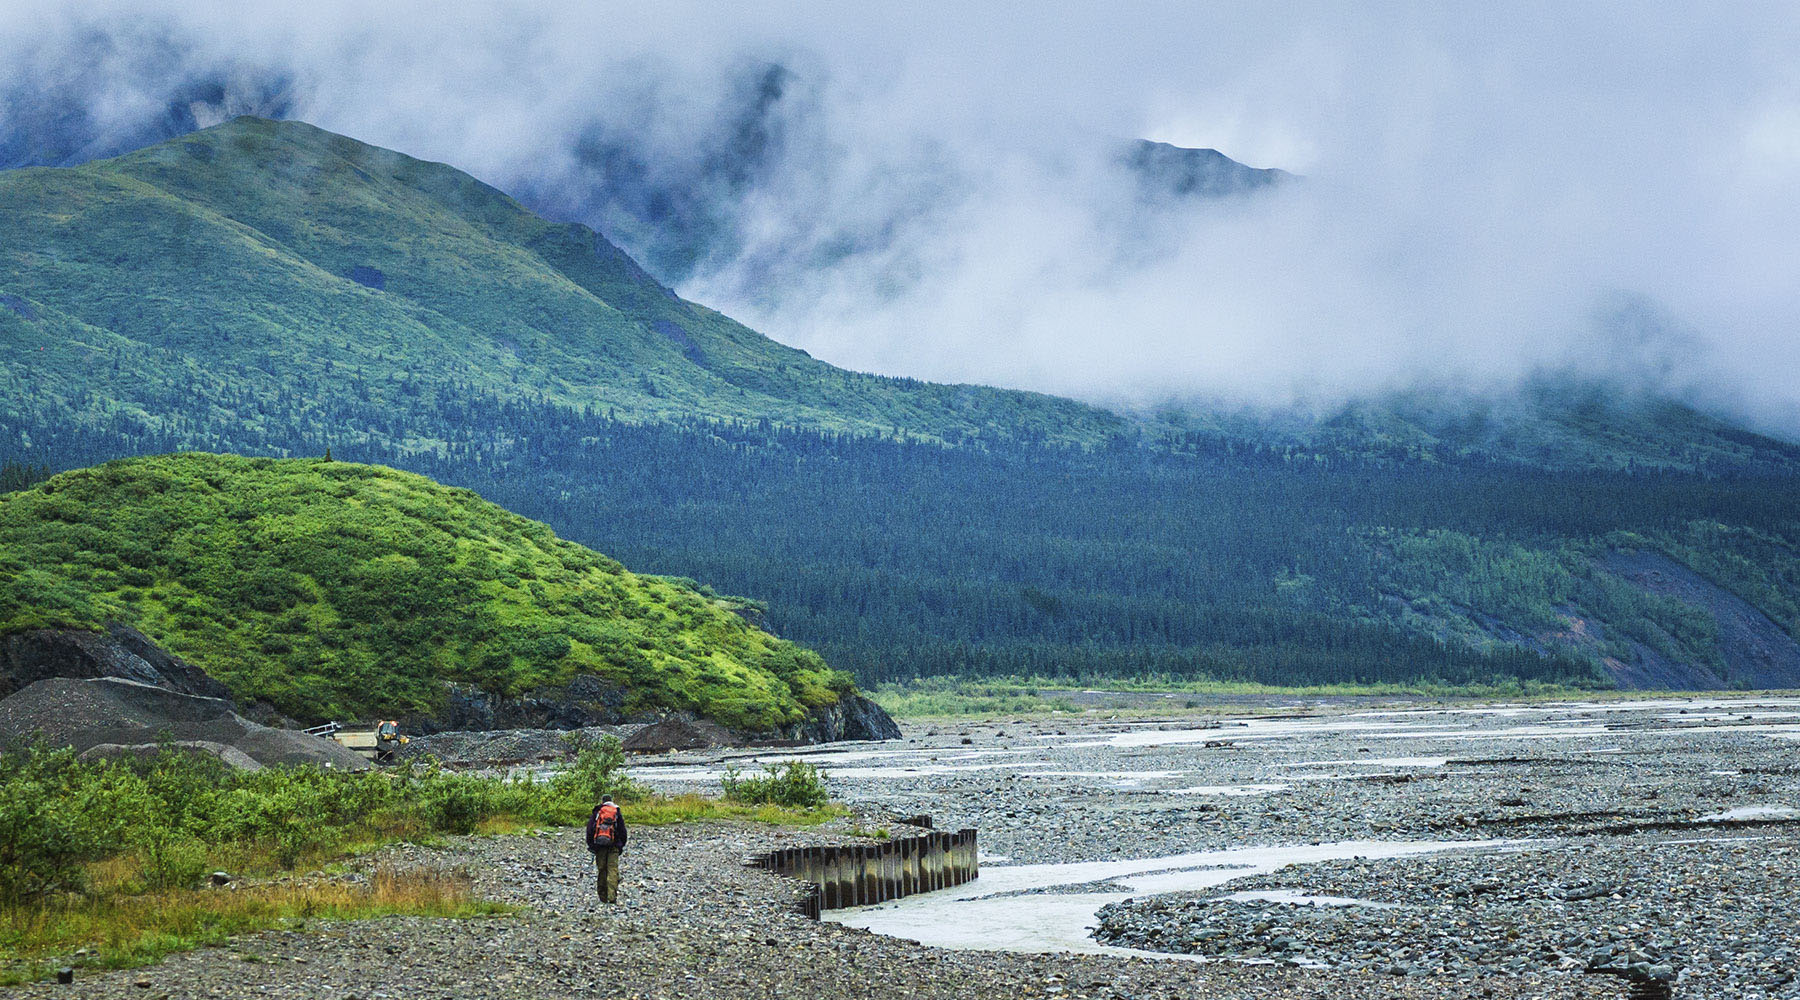 10-NIGHT ALASKA VOYAGE & 6-NIGHT PRE ALASKA PKG 3B